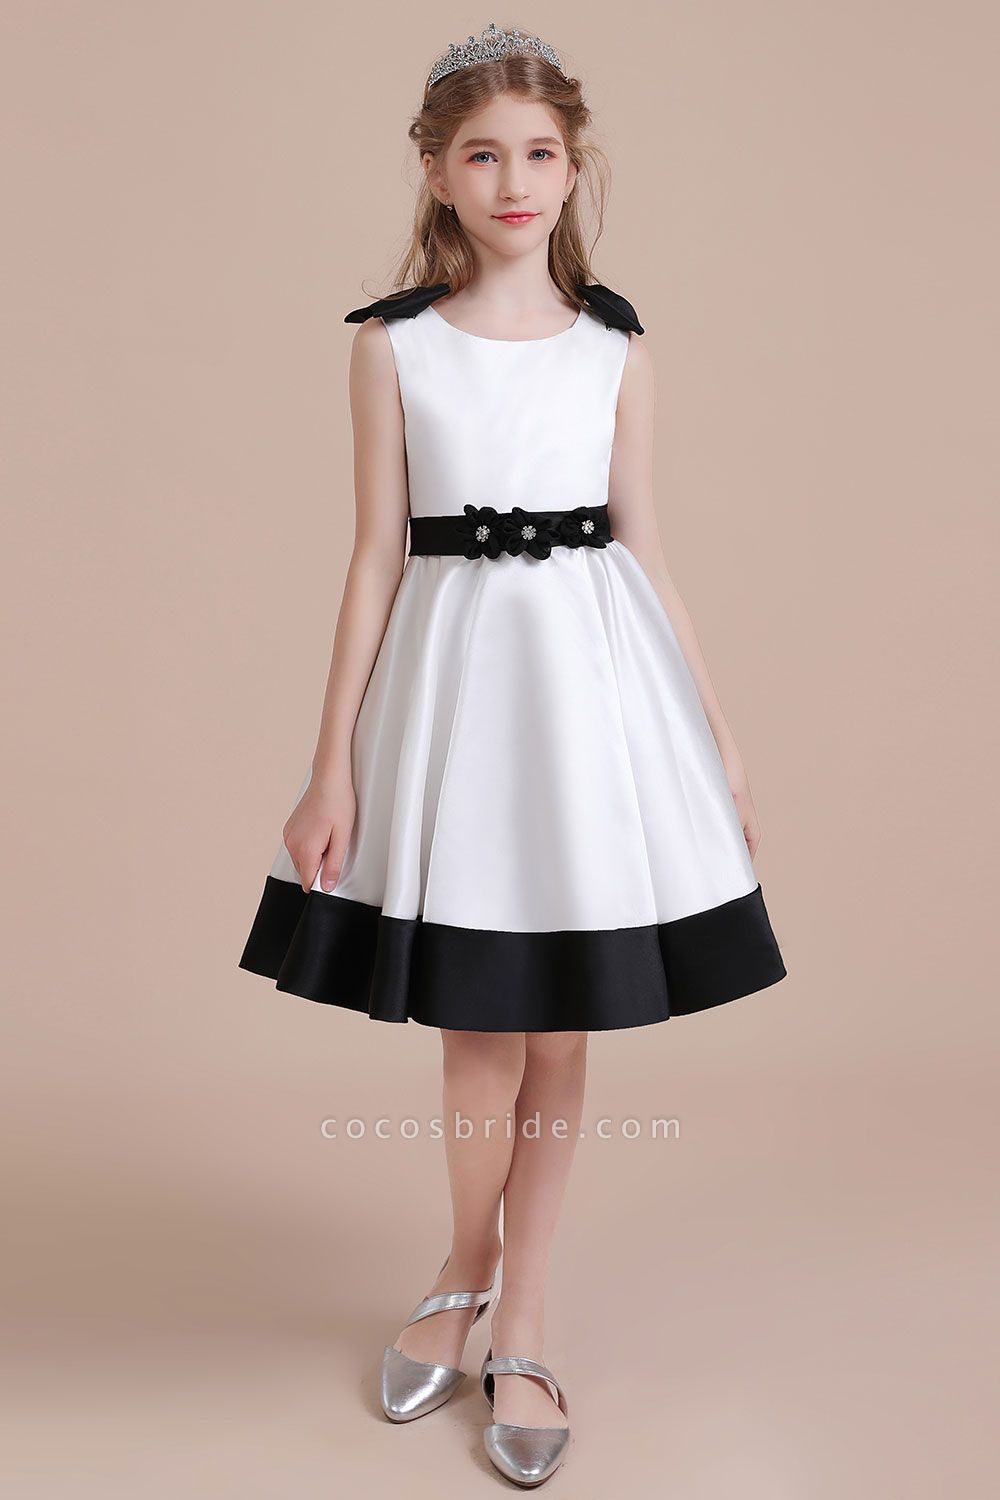 Latest Satin Knee Length Flower Girl Dress